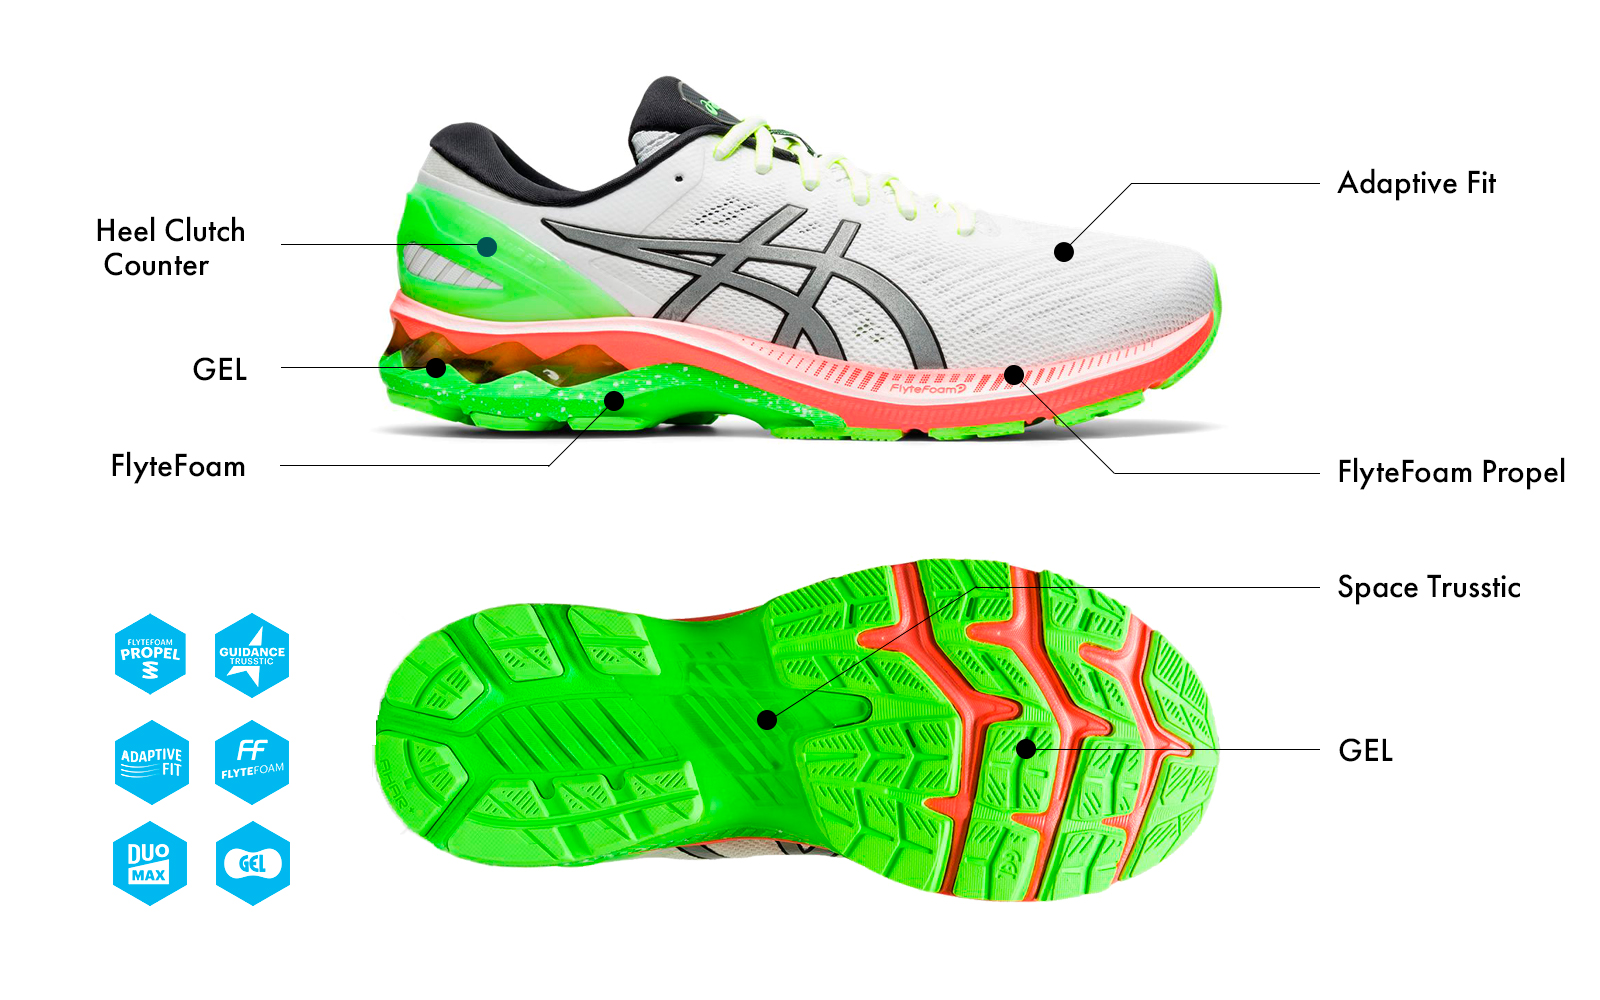 Gel-Kayano 27 Lite-Show - texology